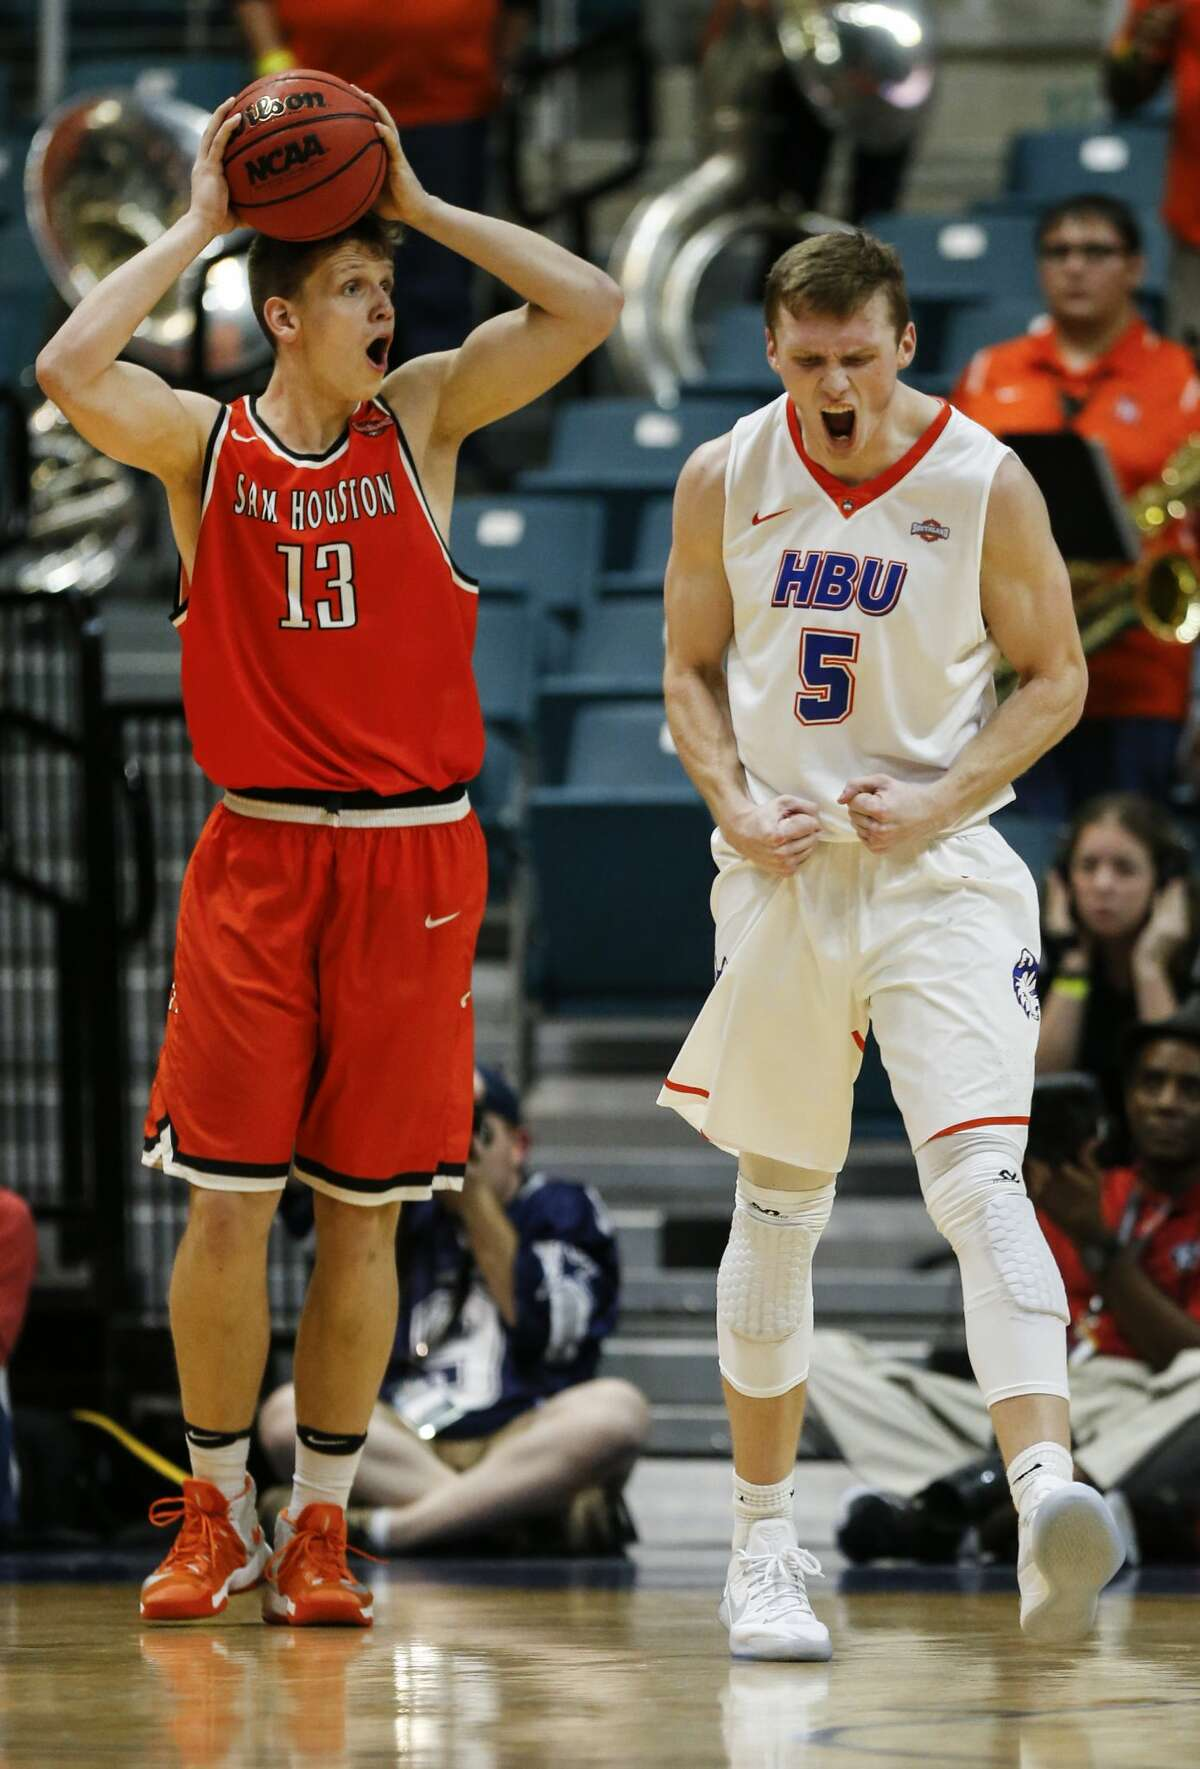 Sam Houston State forward Aurimas Majauskas (13) and Houston Baptist forward Colter Lasher (5) react to a foul called on Majauskas, forcing him to foul out, during the second half of a Southland Conference Tournament quarterfinal basketball game at the Merrell Center on Thursday, March 9, 2017, in Katy. ( Brett Coomer / Houston Chronicle )